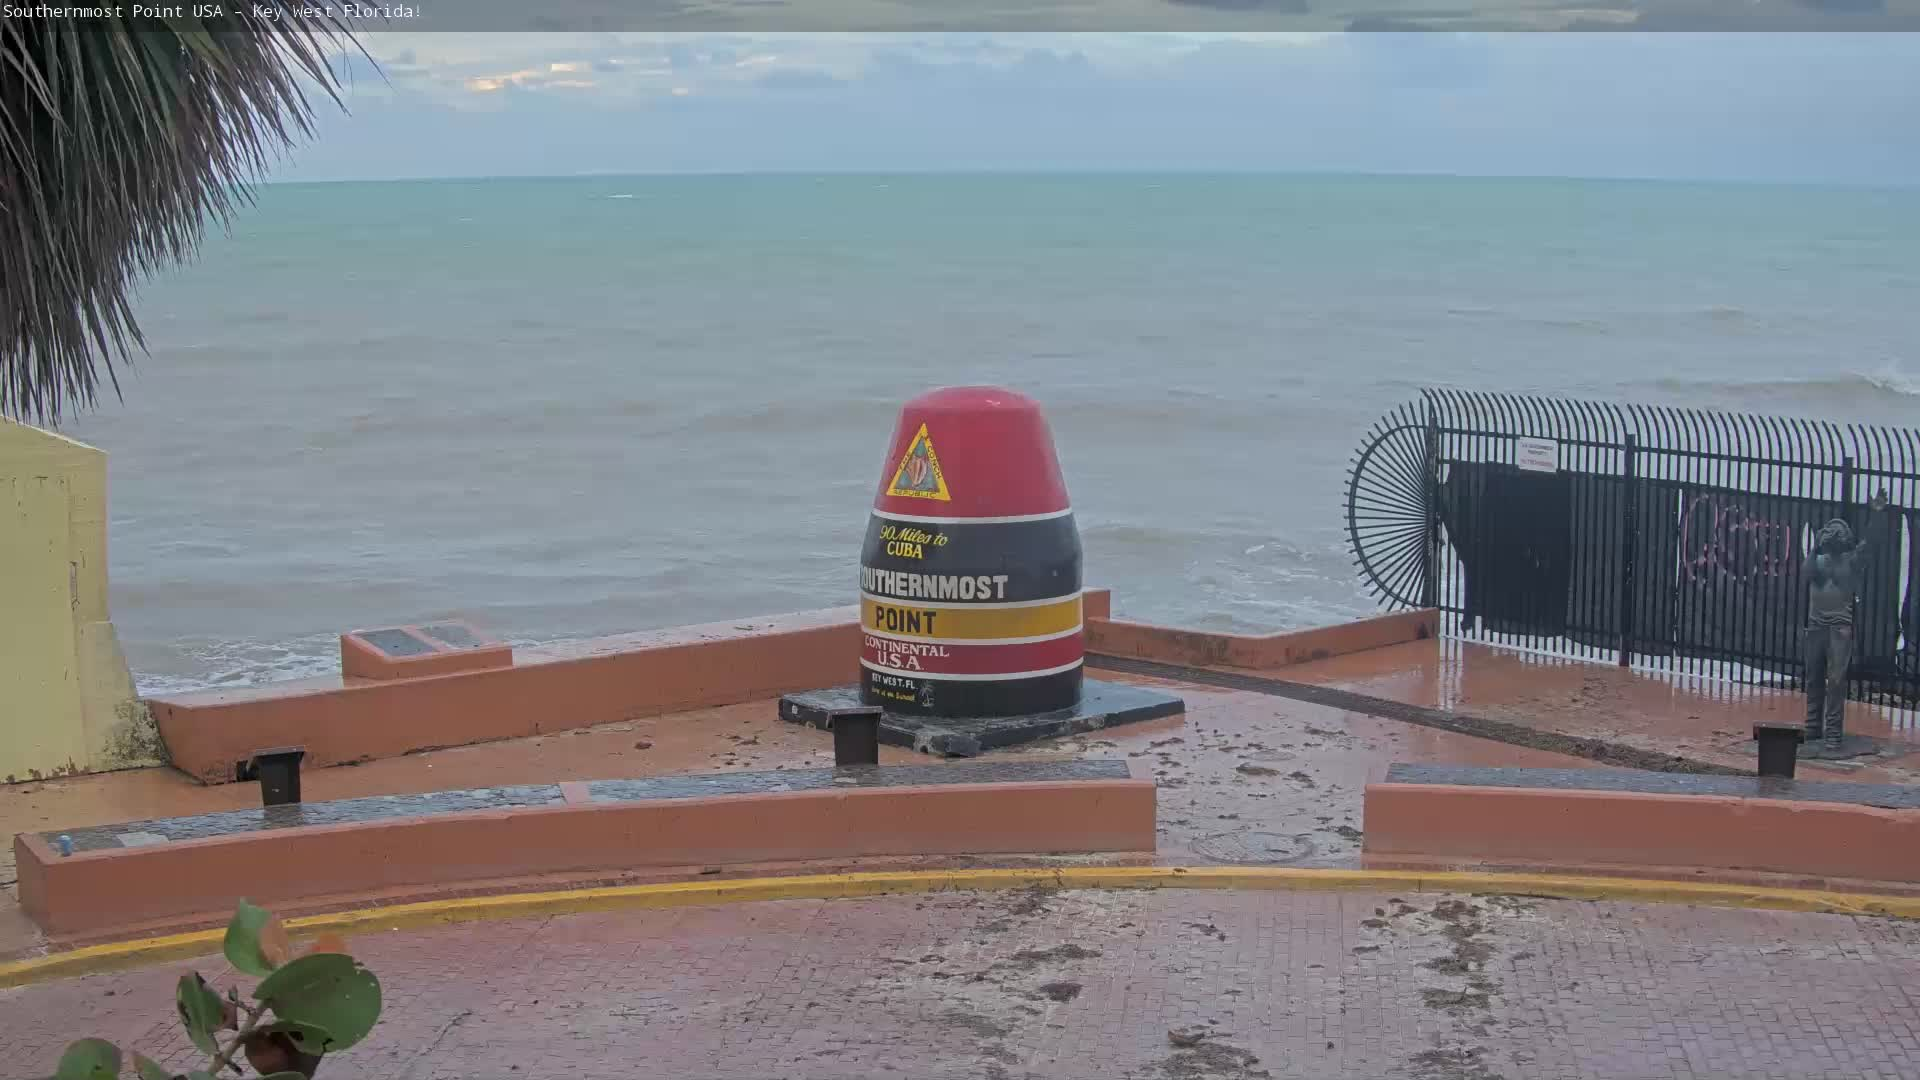 Southernmost Point Webcam Ida (2021)